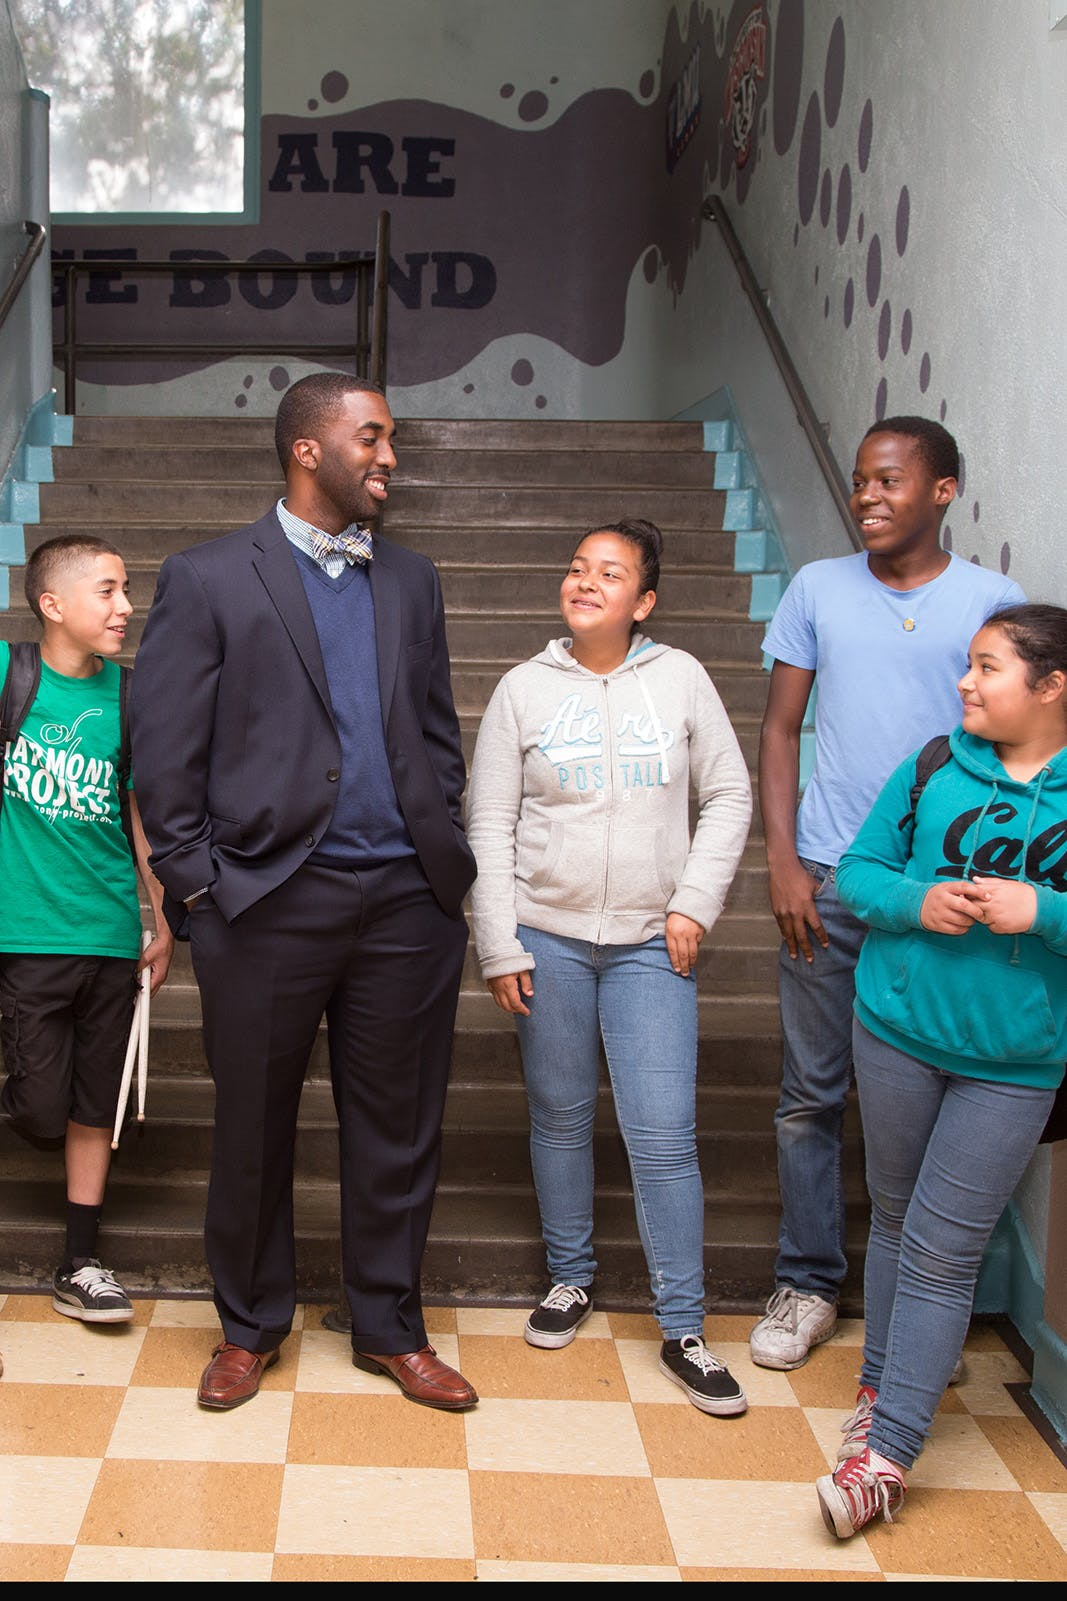 Principal standing in hallway with students